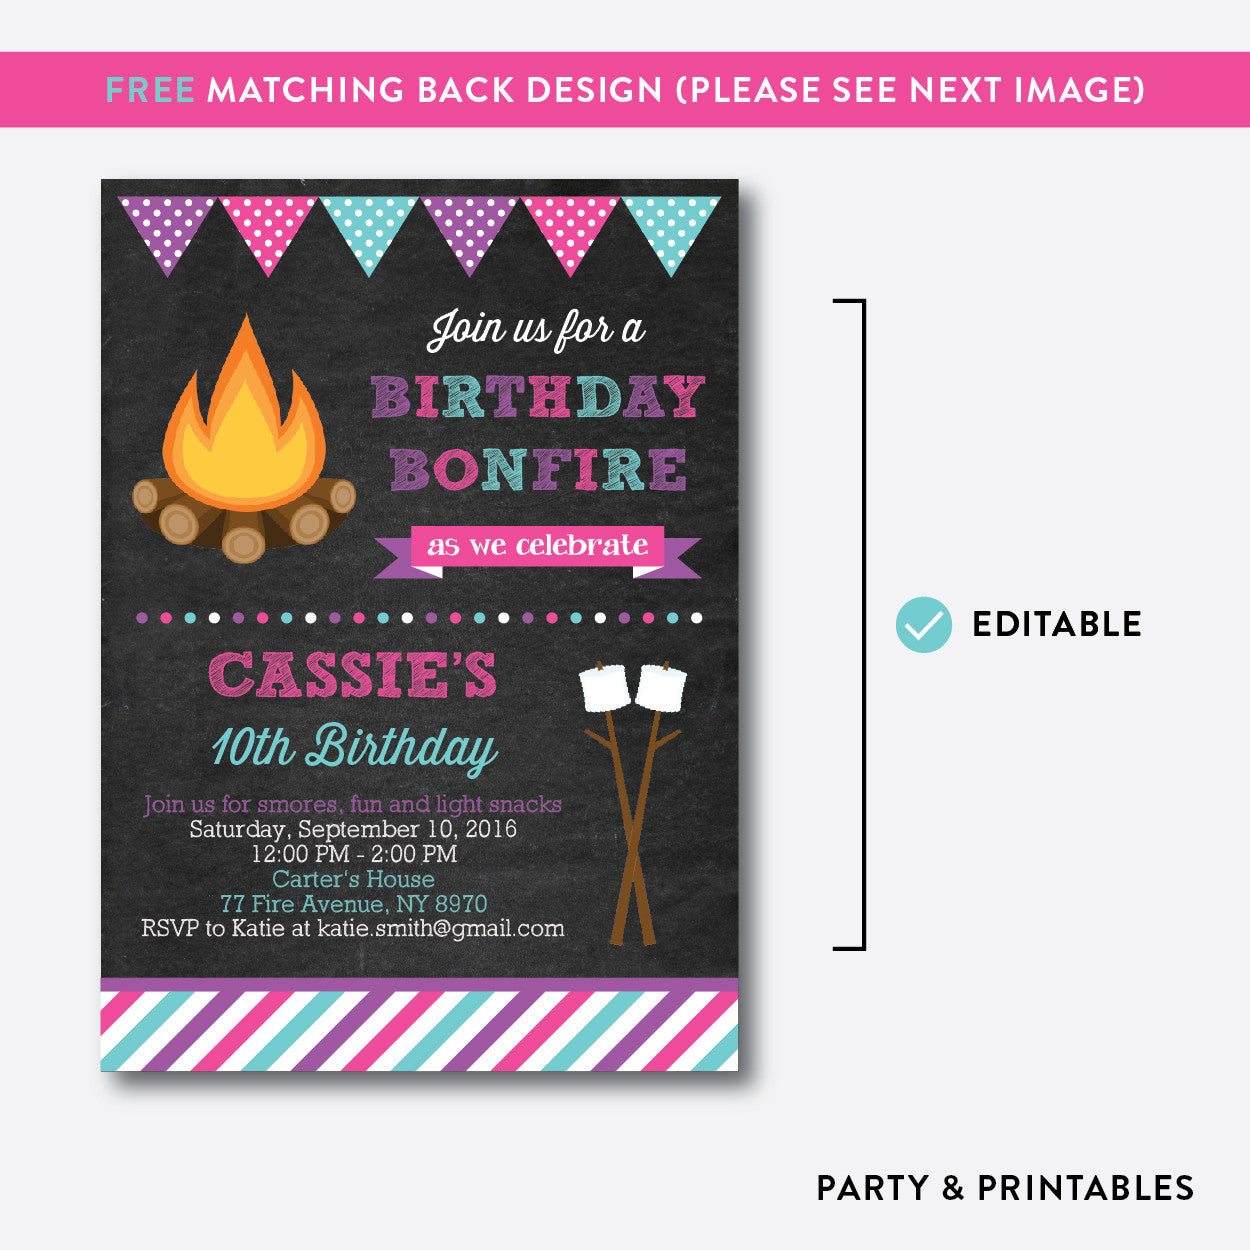 Bonfire Chalkboard Kids Birthday Invitation / Editable / Instant Download (CKB.498), invitation - Party and Printables